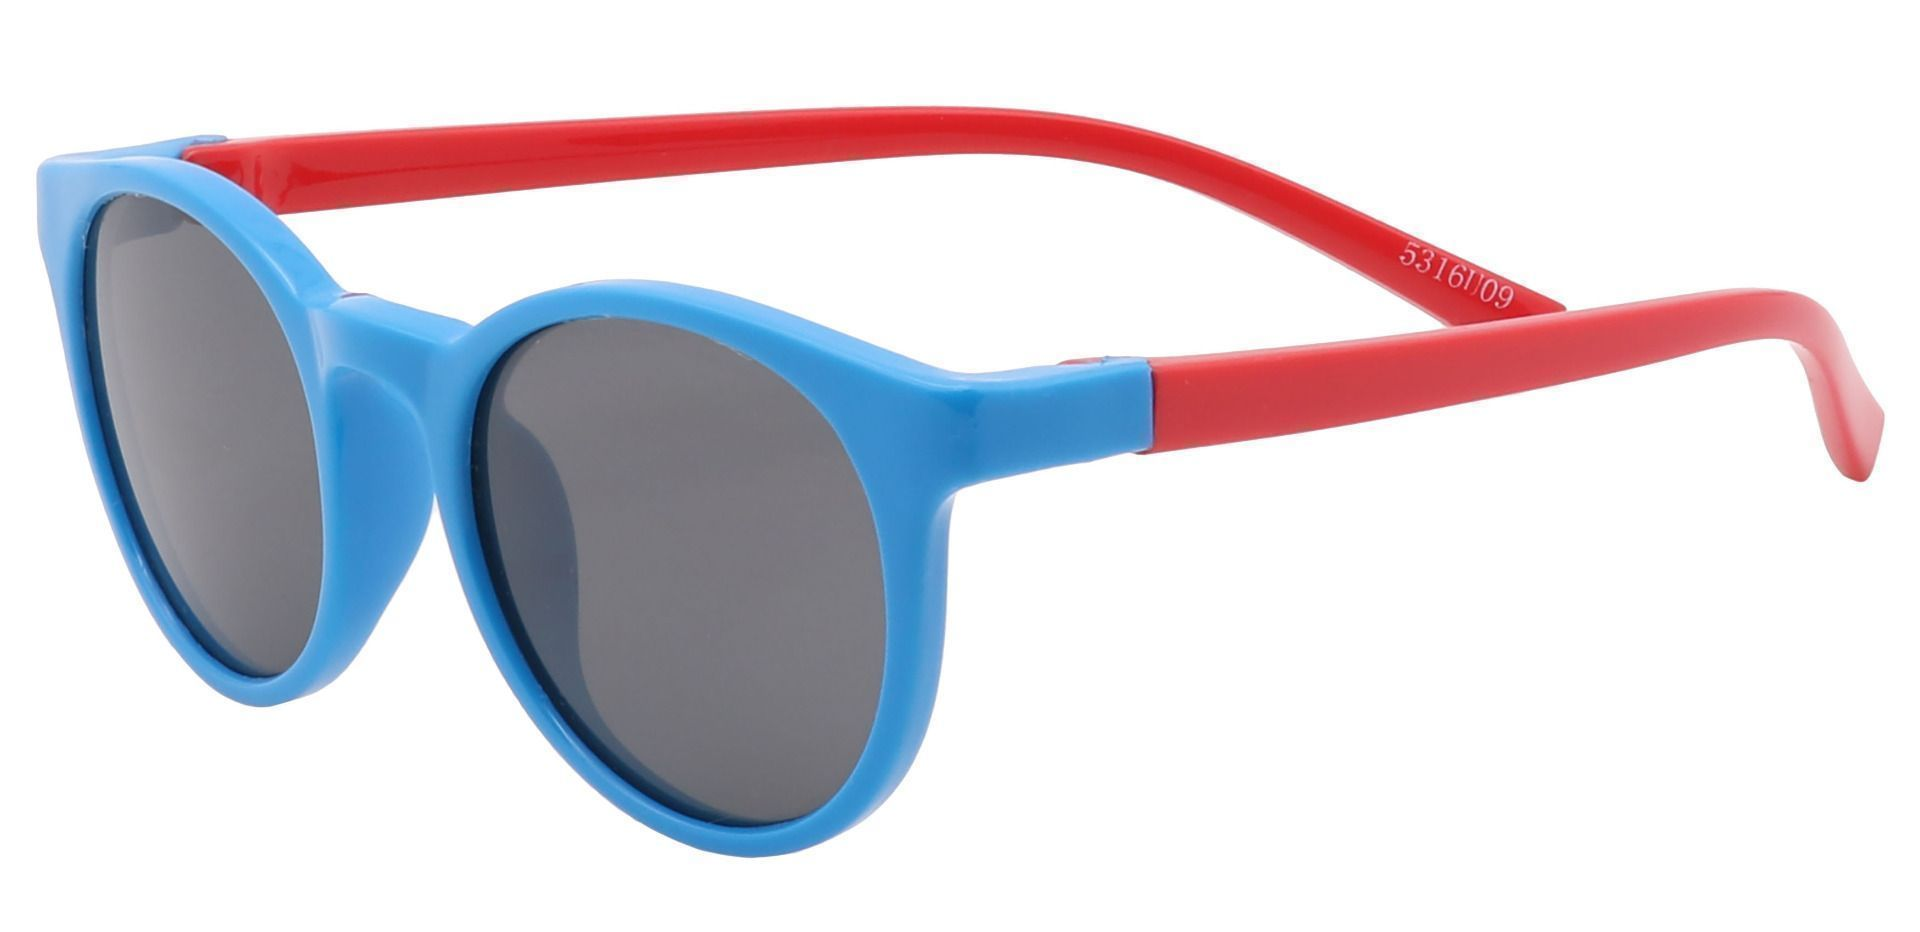 Bender Round Non-Rx Sunglasses - Blue Frame With Gray Lenses